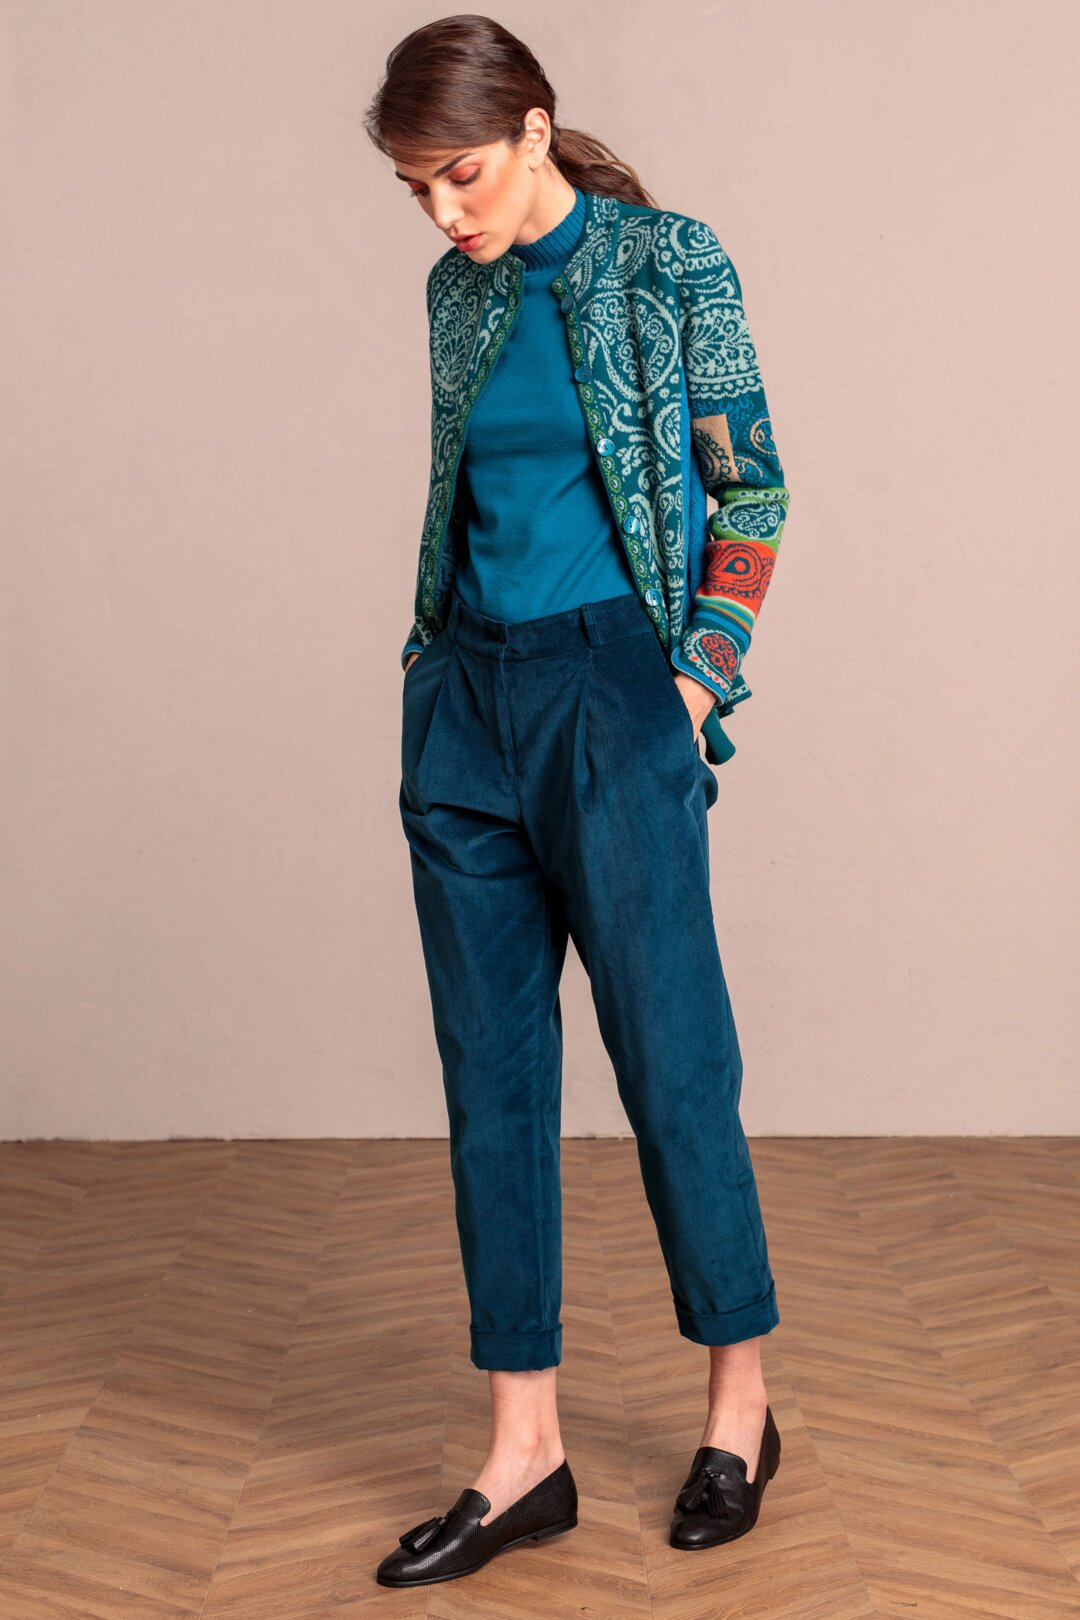 outfit-7c8a1560